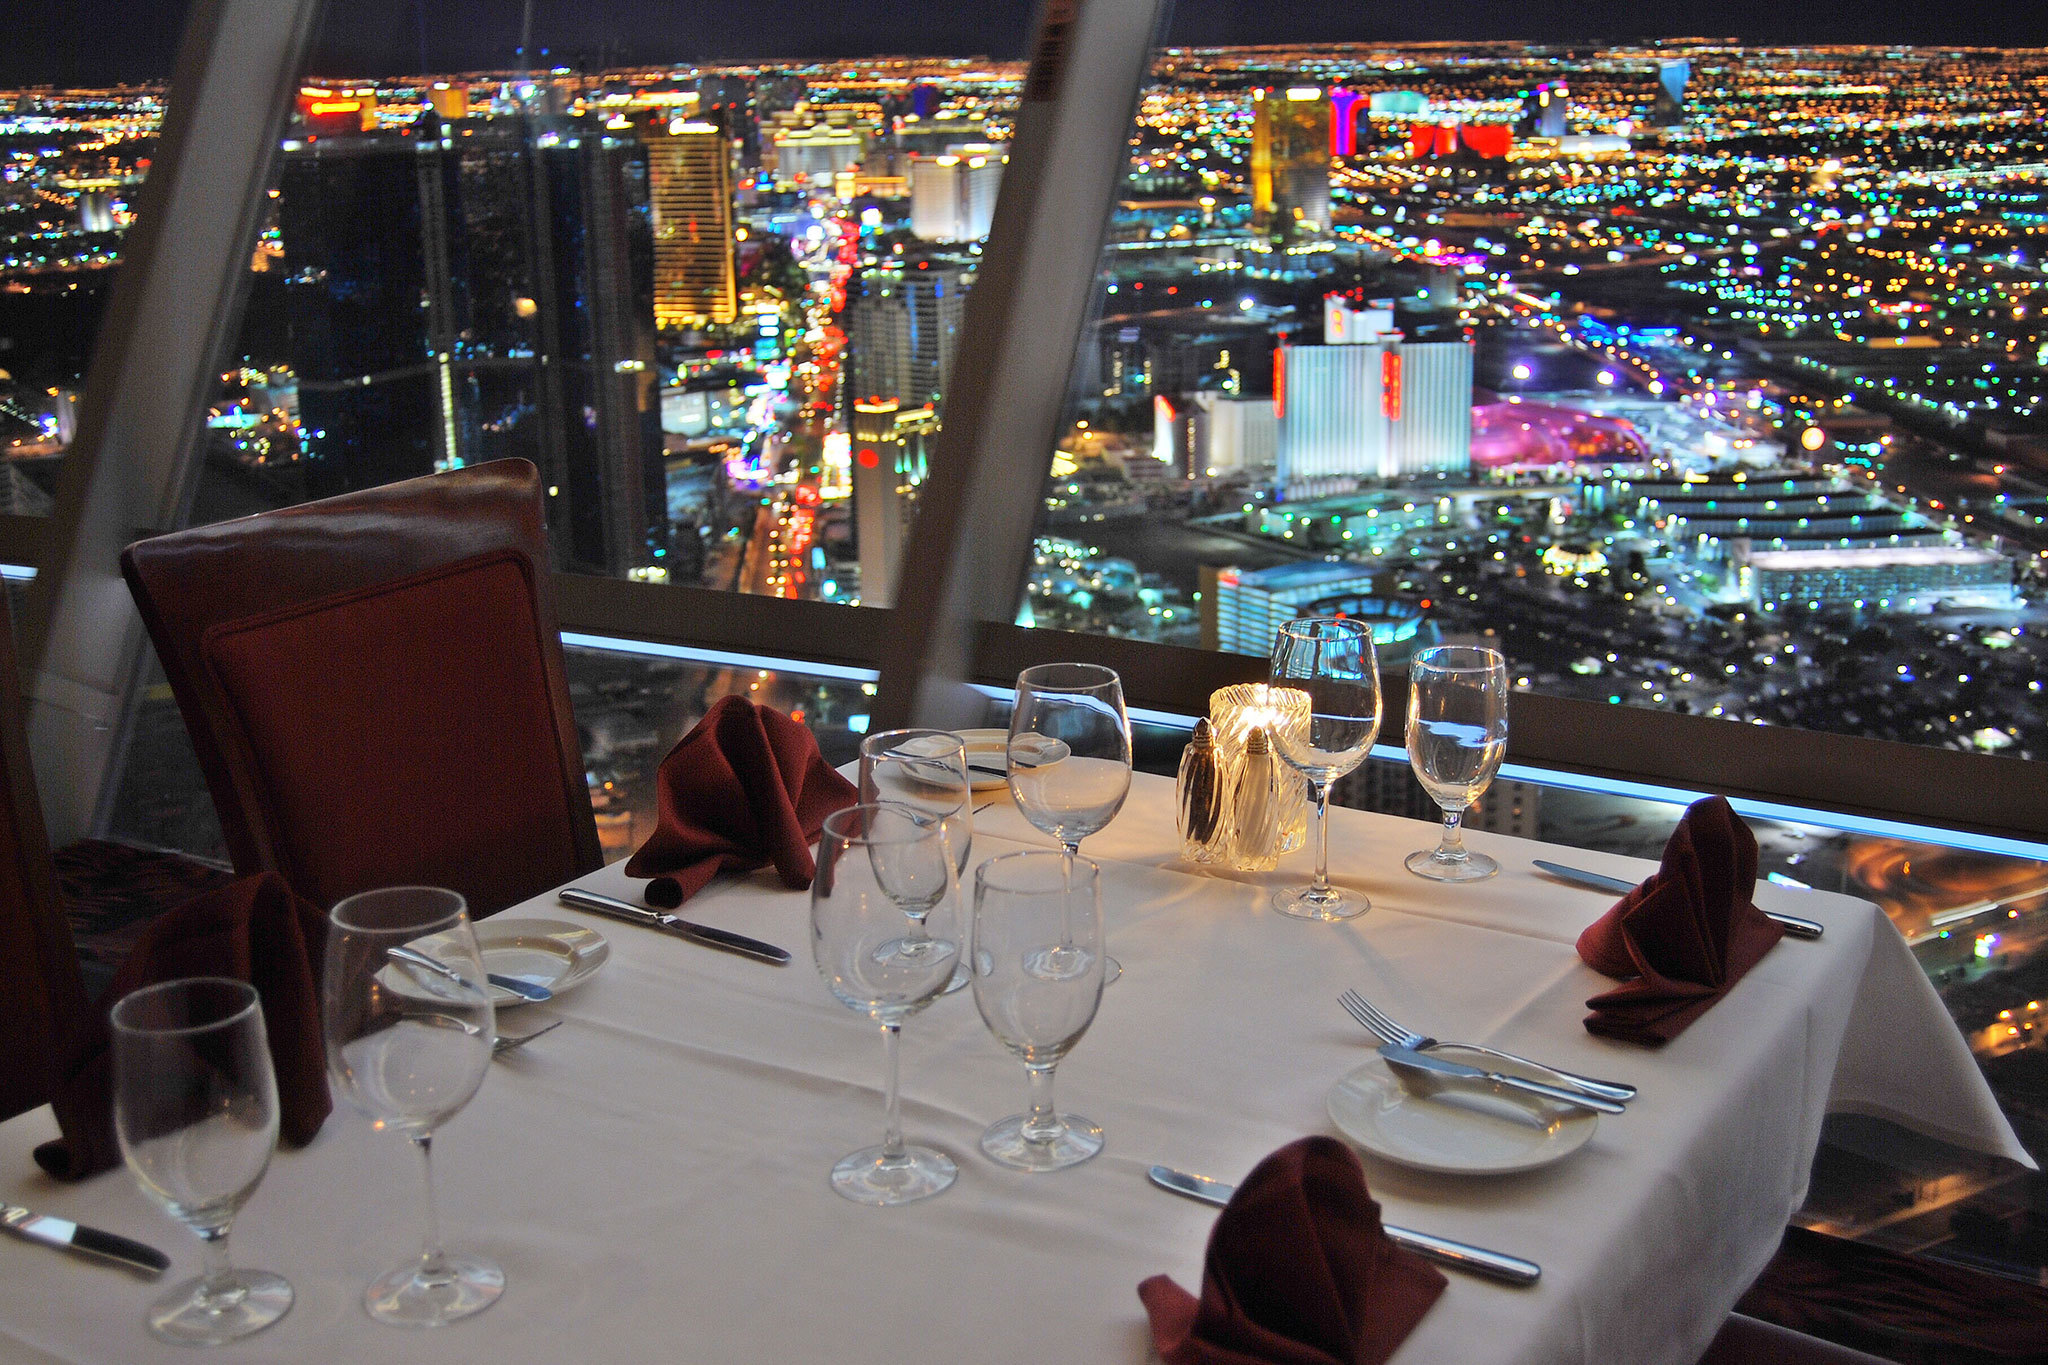 Best Cheap Food & Affordable Restaurants in Las Vegas